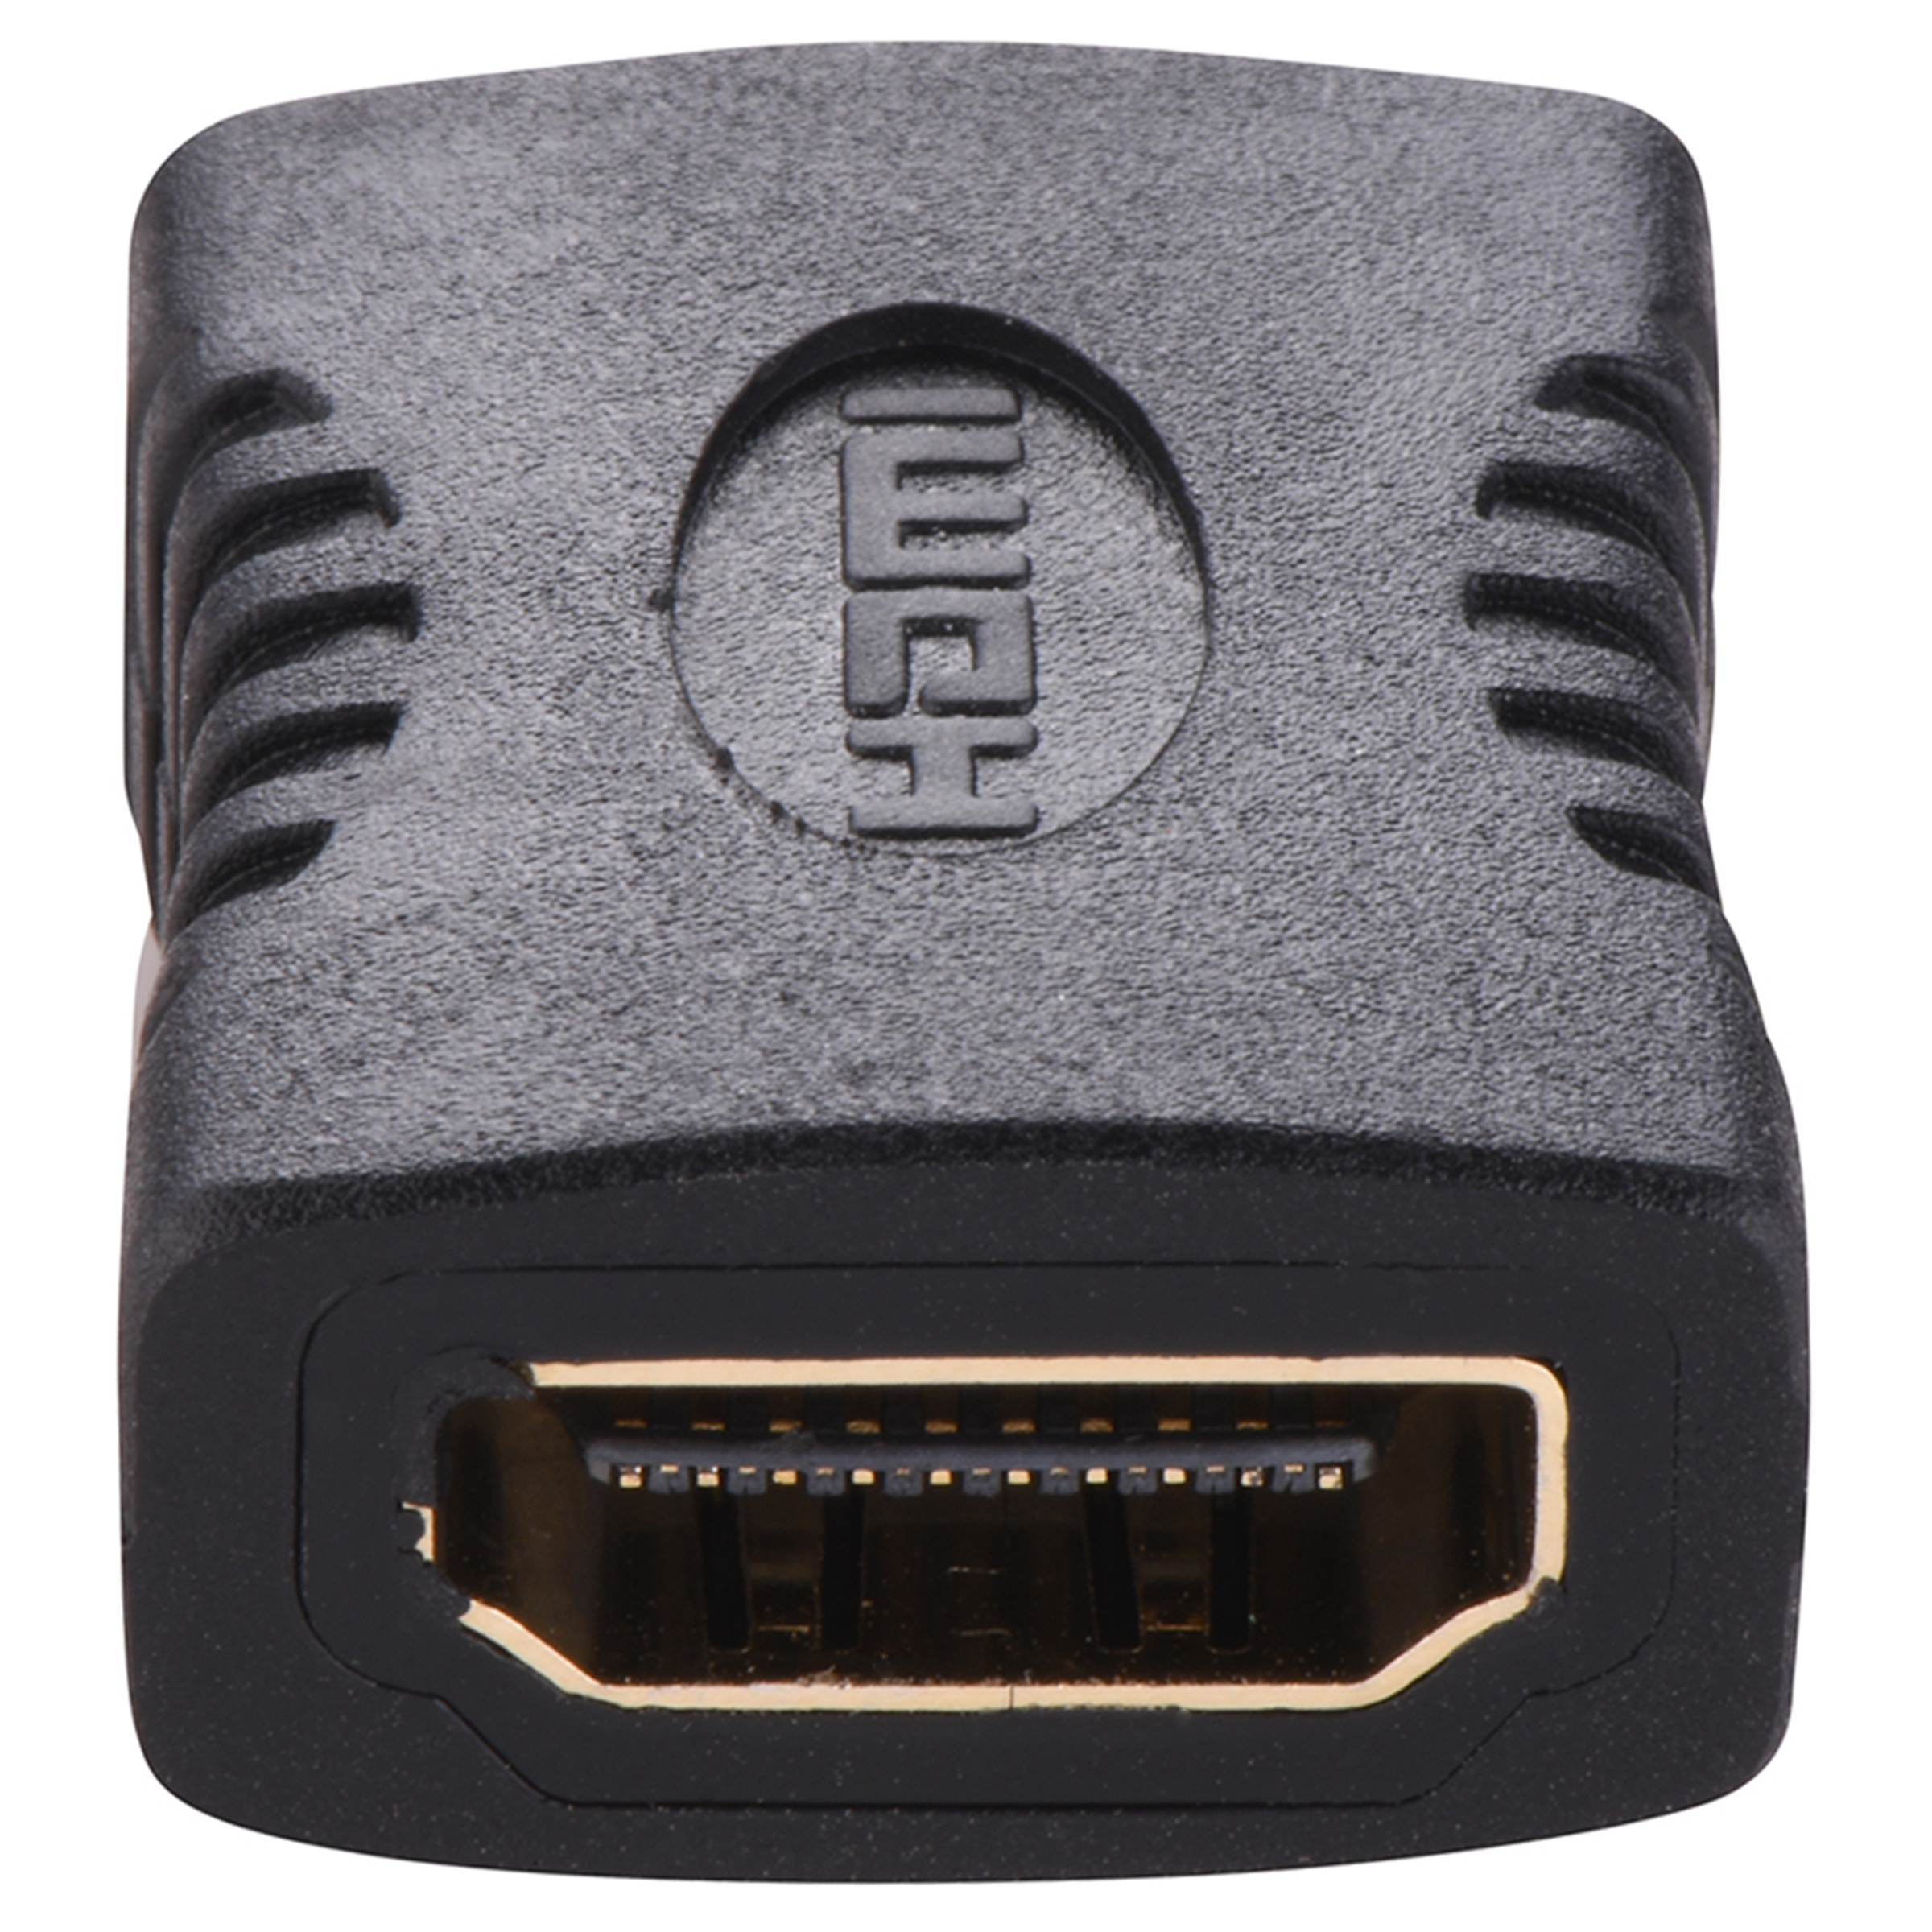 tv cables \u0026 connectors walmart comproduct image onn hdmi coupler, female to female, connect two hdmi cables